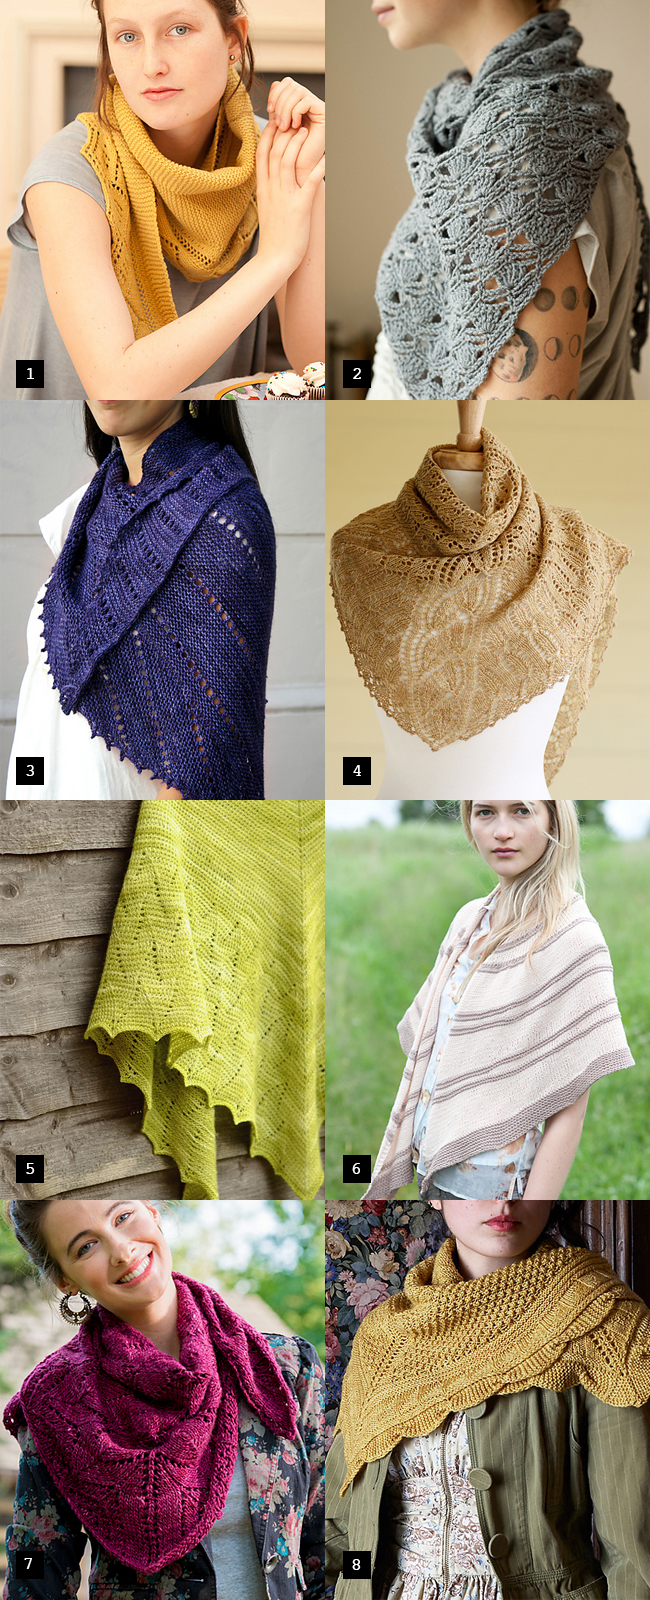 Sweet spring shawls: Or, what to knit for Mother's Day, part 2